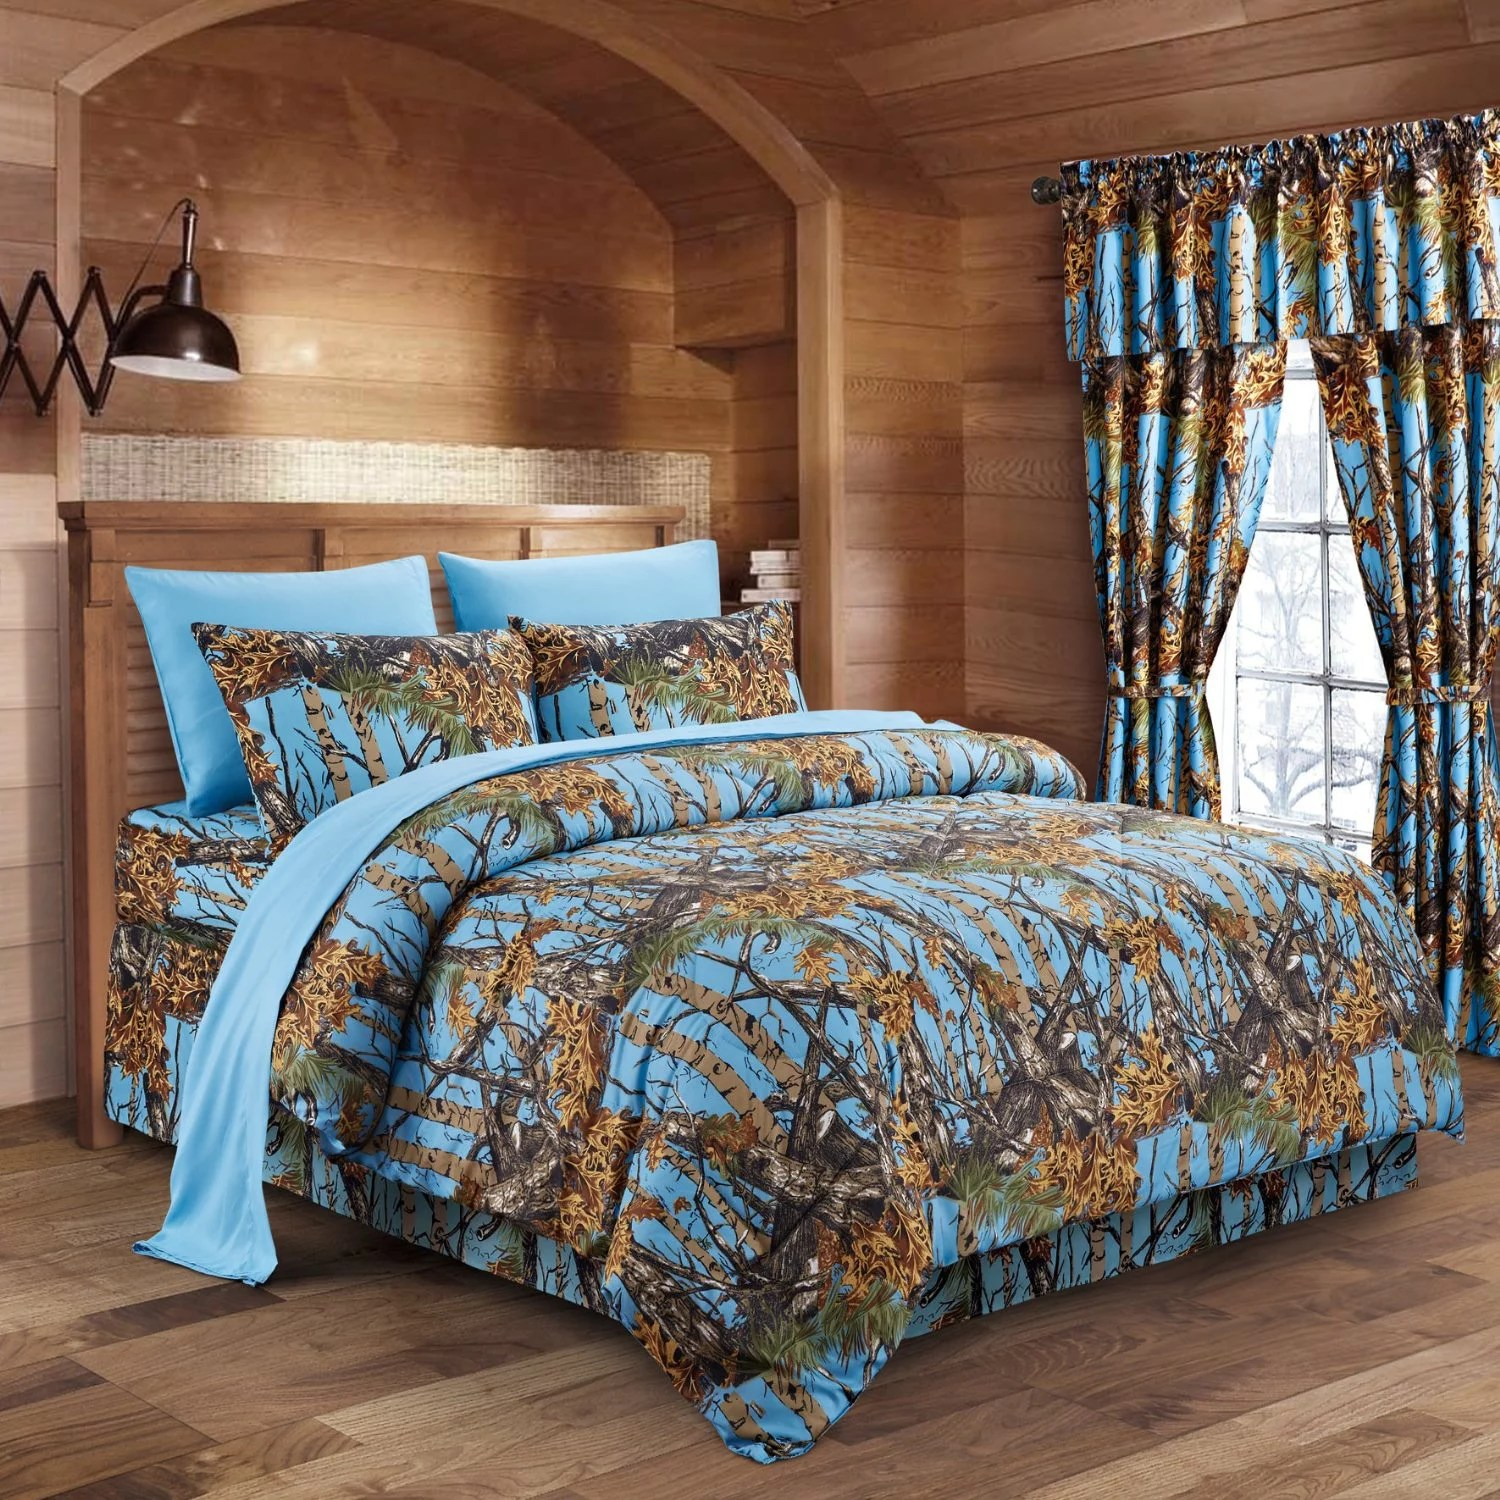 Amazon Cd Regal The Woods Powder Blue Camouflage Full 8pc Premium Luxury Comforter Sheet Pillowcases And Bed Skirt Set By Regal Comfort Camo Bedding Set For